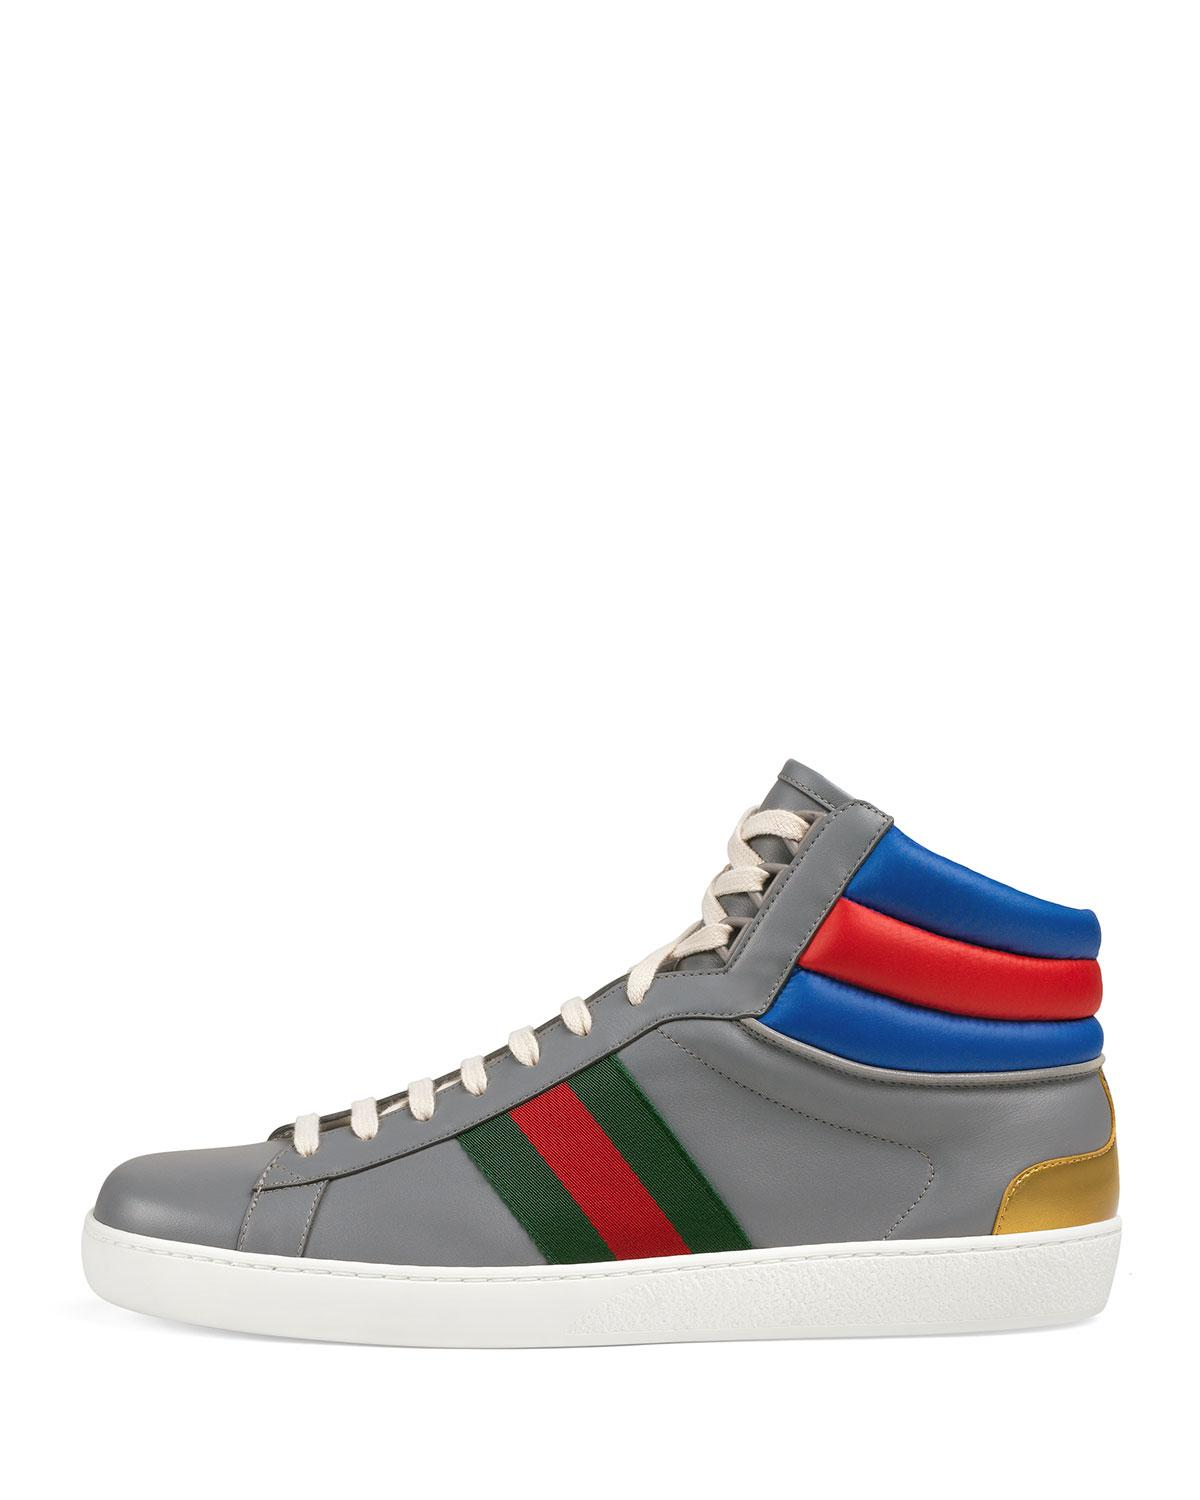 587dd17db1f Lyst - Gucci Men s Ace Colorblock Leather High-top Sneakers in Gray for Men